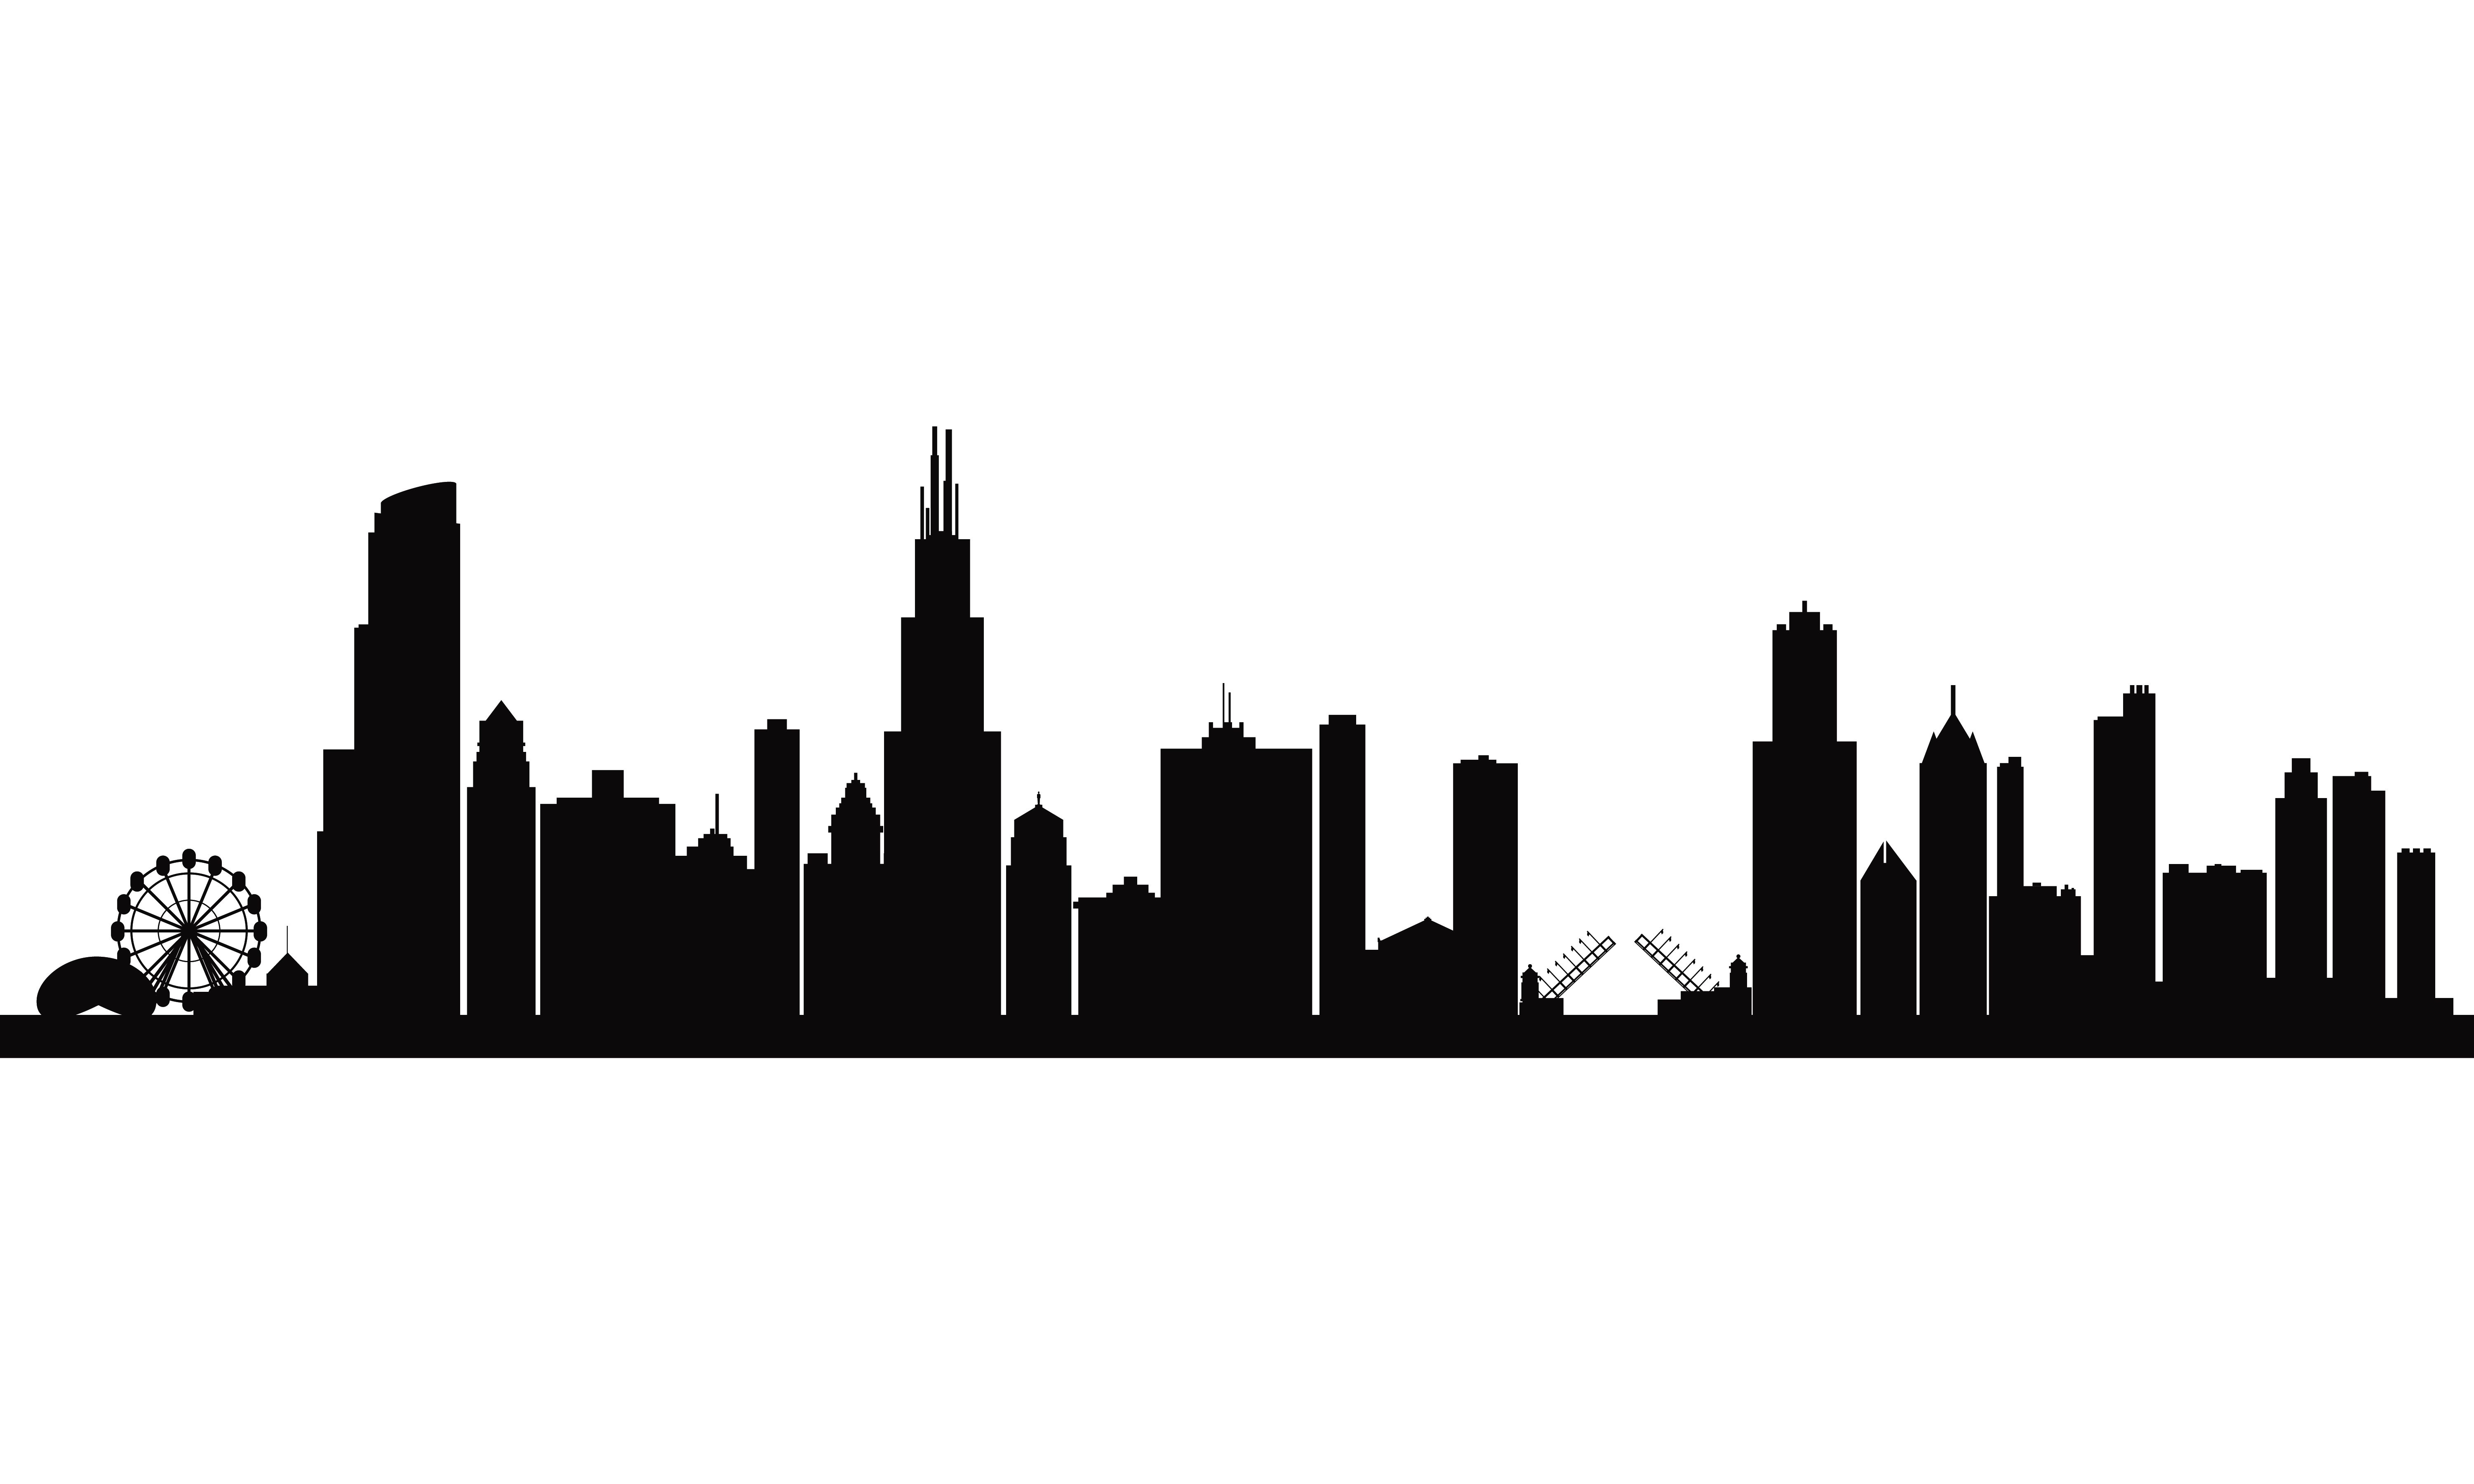 City skyline silhouette background.